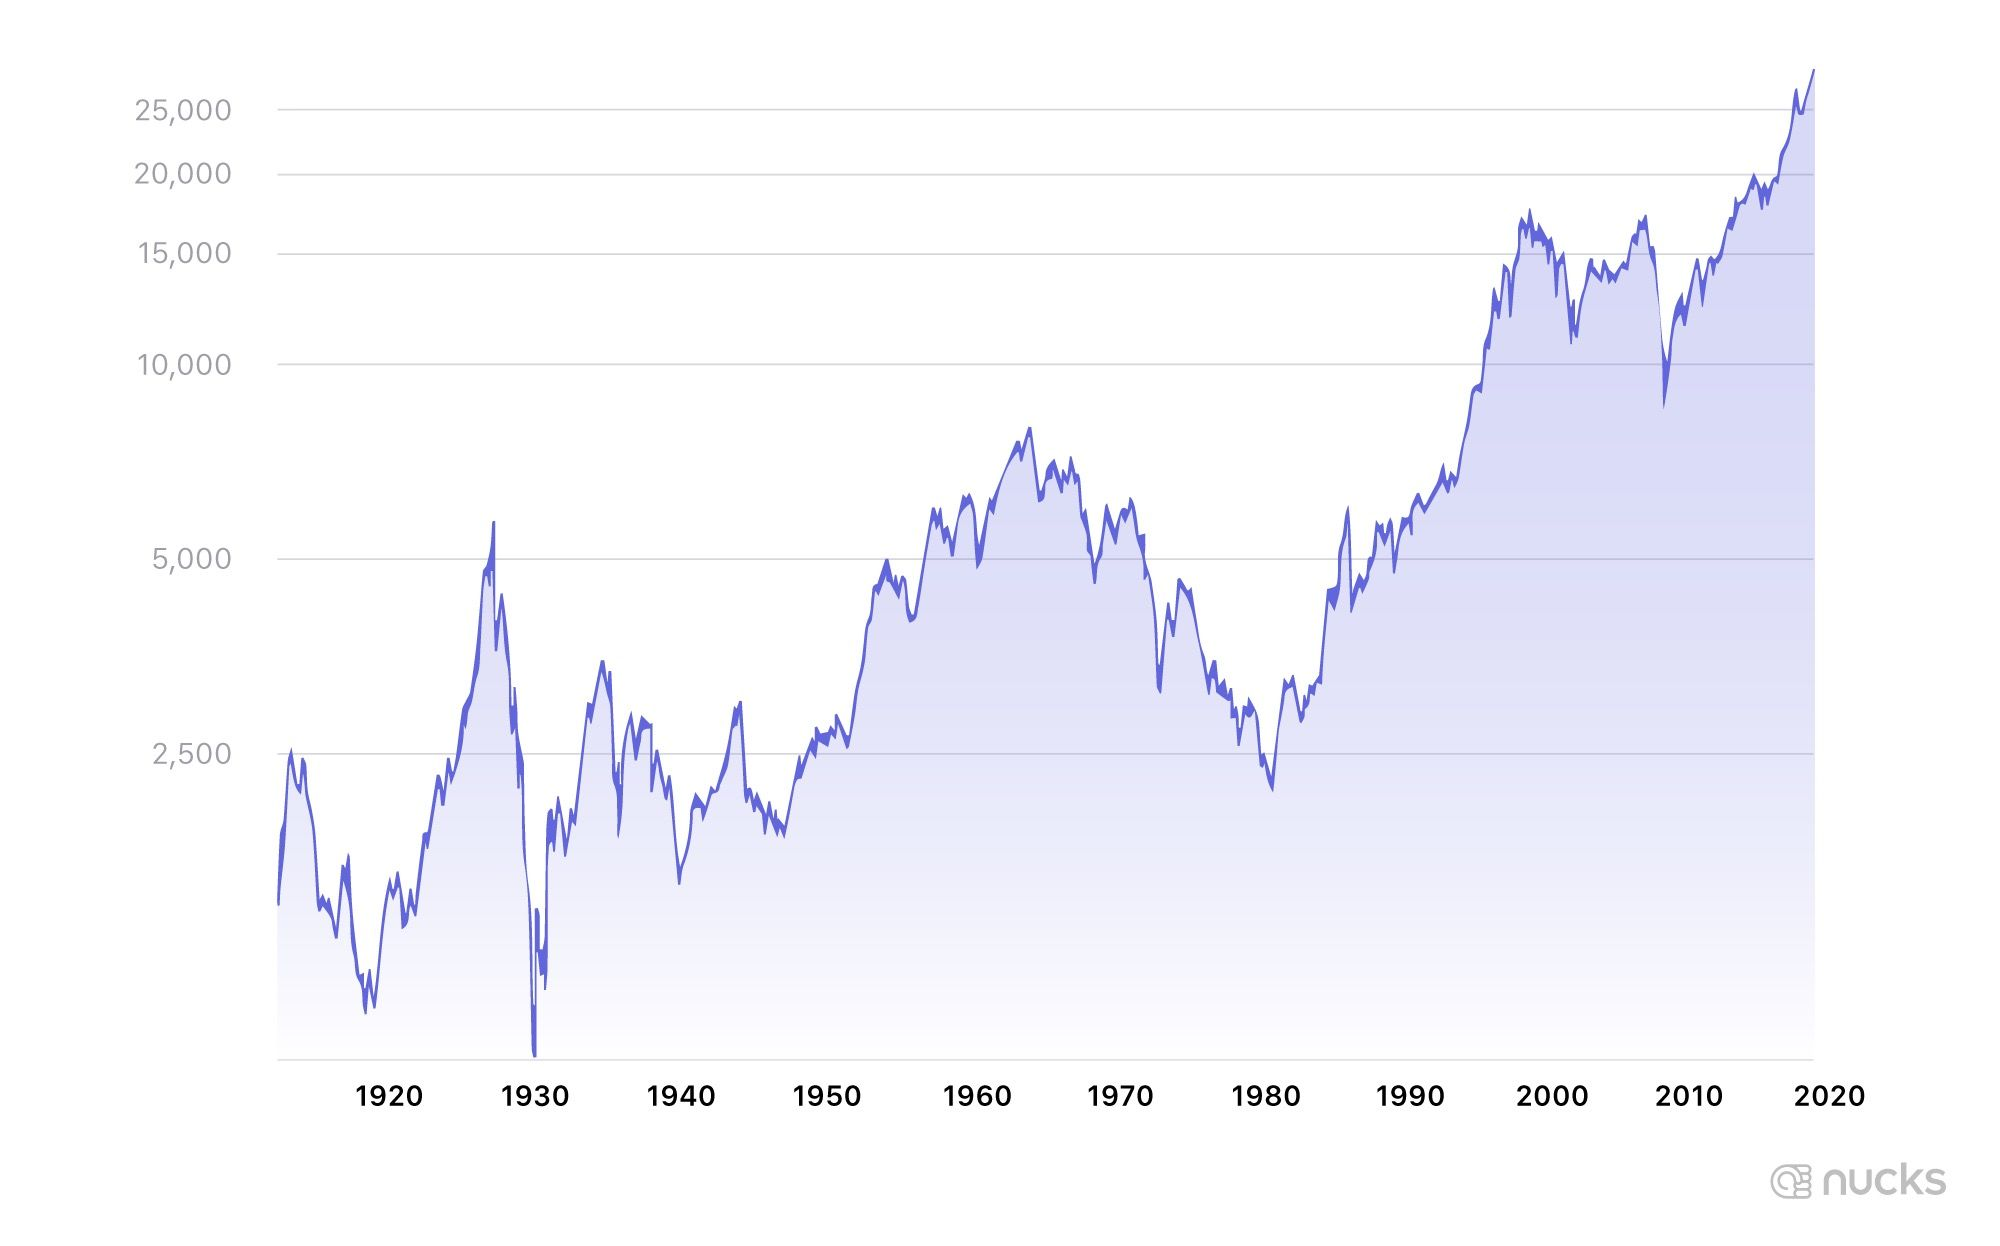 The stock market over the last 100 years.